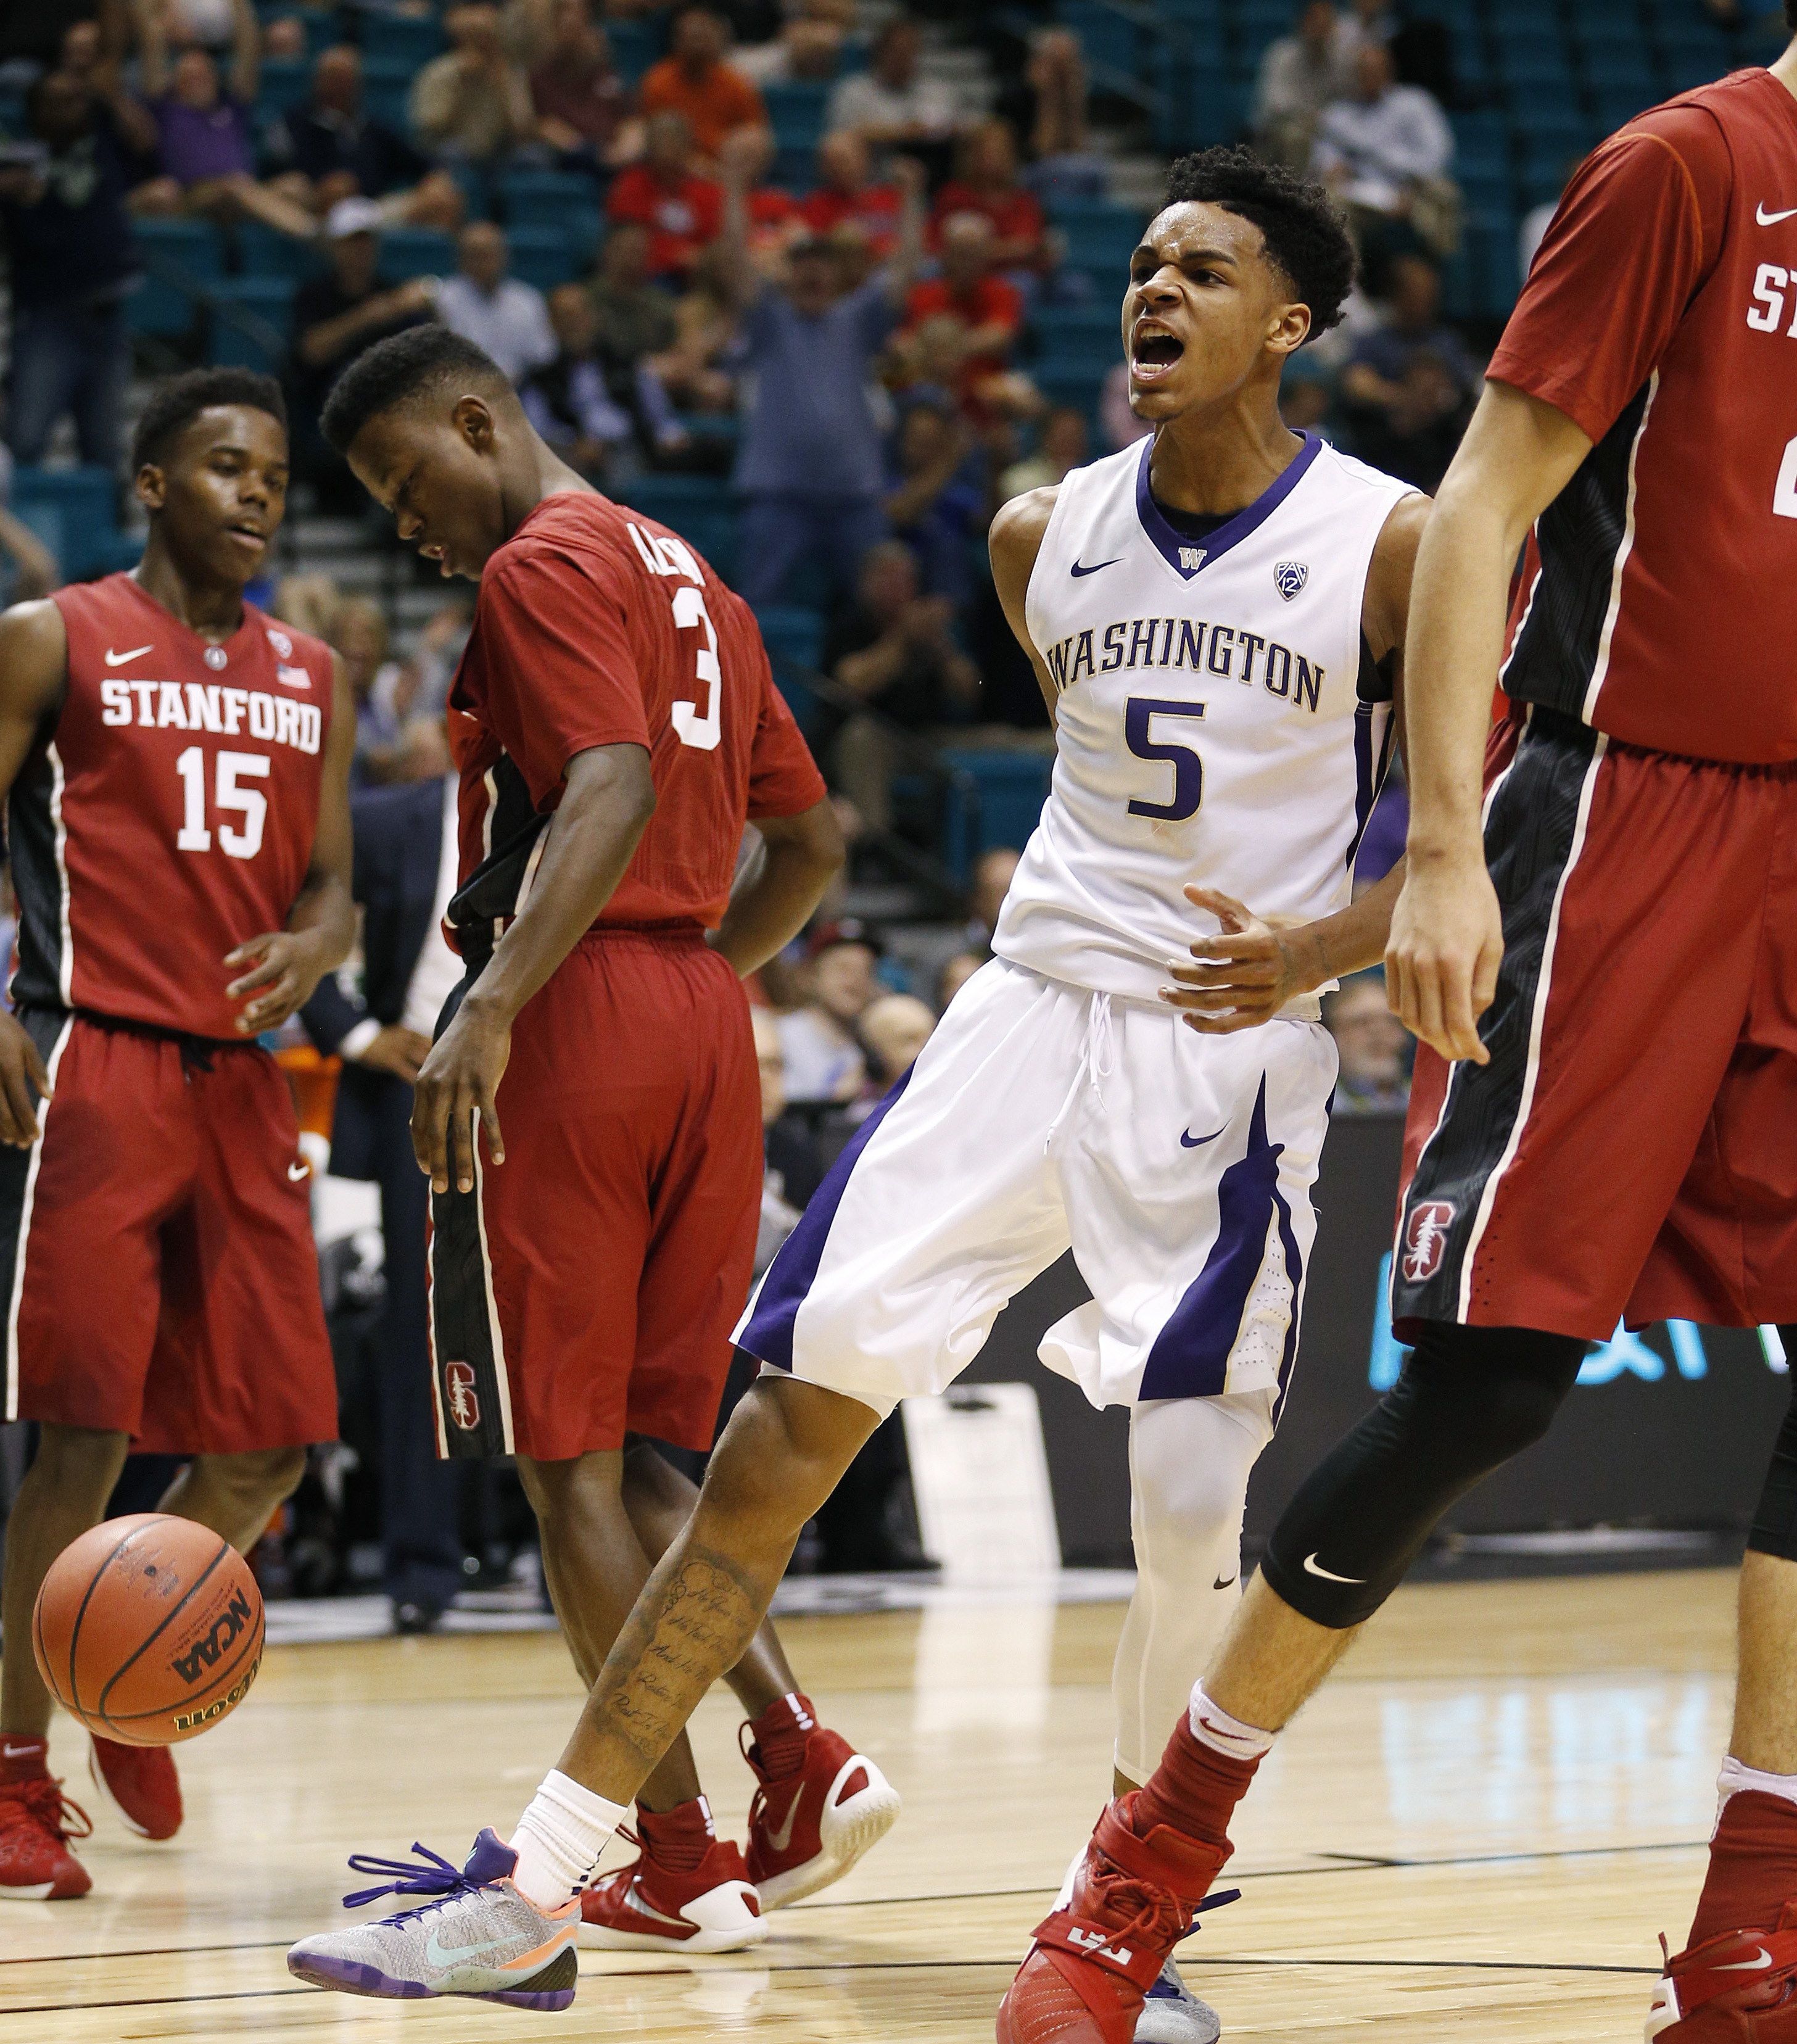 Washington guard Dejounte Murray (5) reacts after scoring against Stanford during the first half of an NCAA college basketball game in the first round of the Pac-12 tournament Wednesday, March 9, 2016, in Las Vegas. (AP Photo/John Locher)